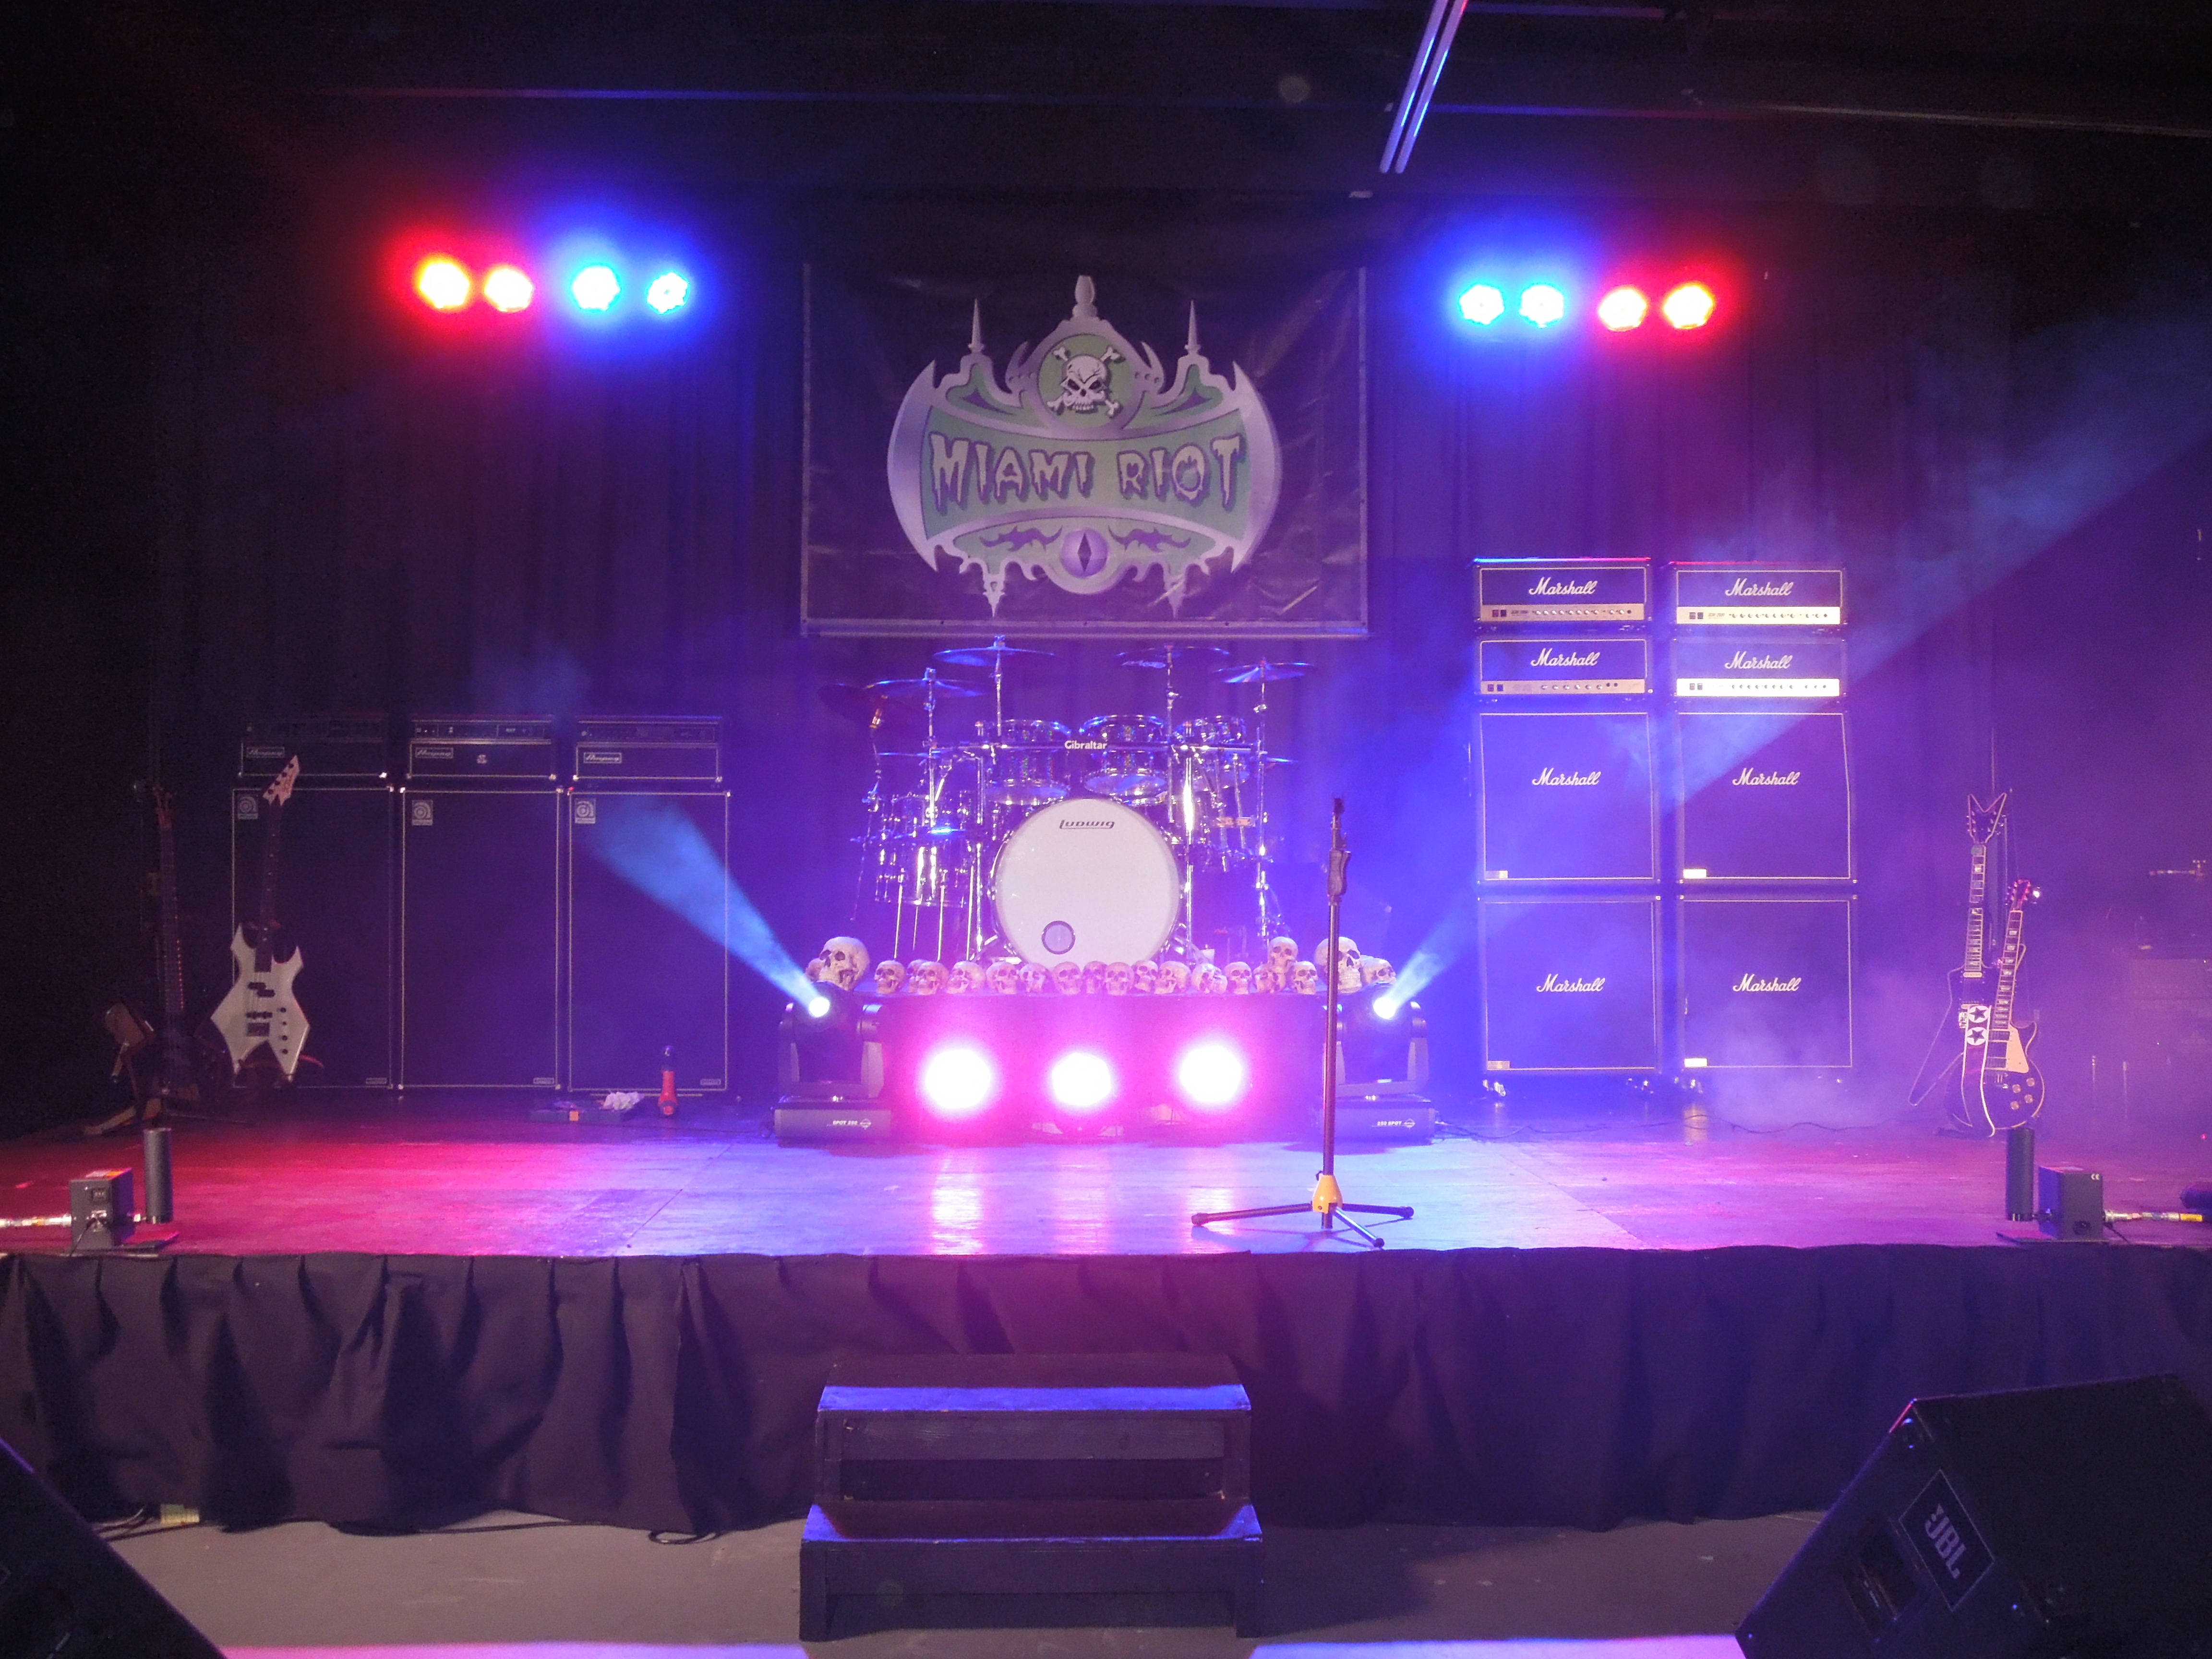 Concert Stage Backdrop